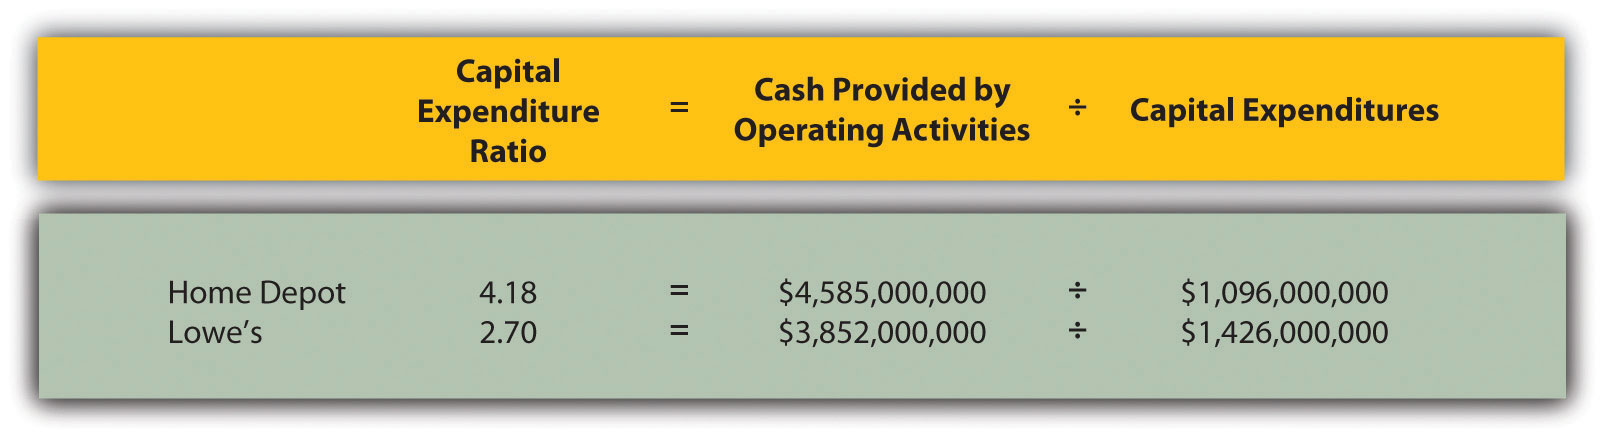 Accounting Capital Expenditures